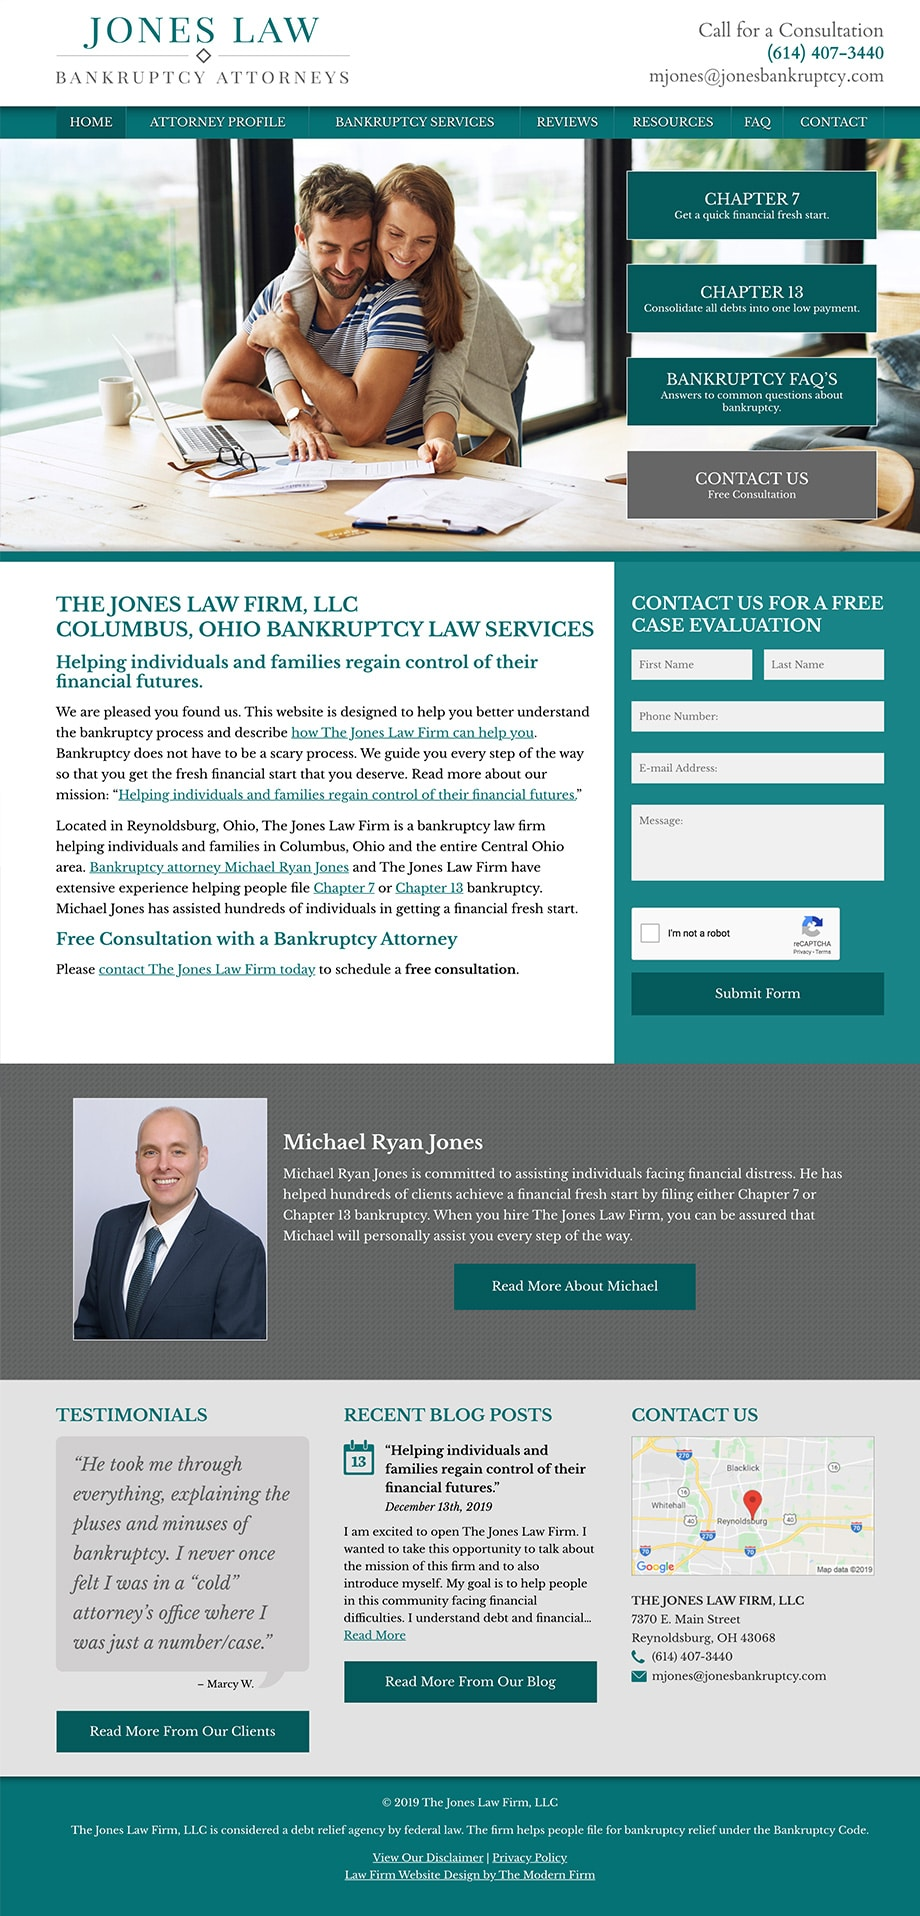 Law Firm Website Design for The Jones Law Firm, LLC